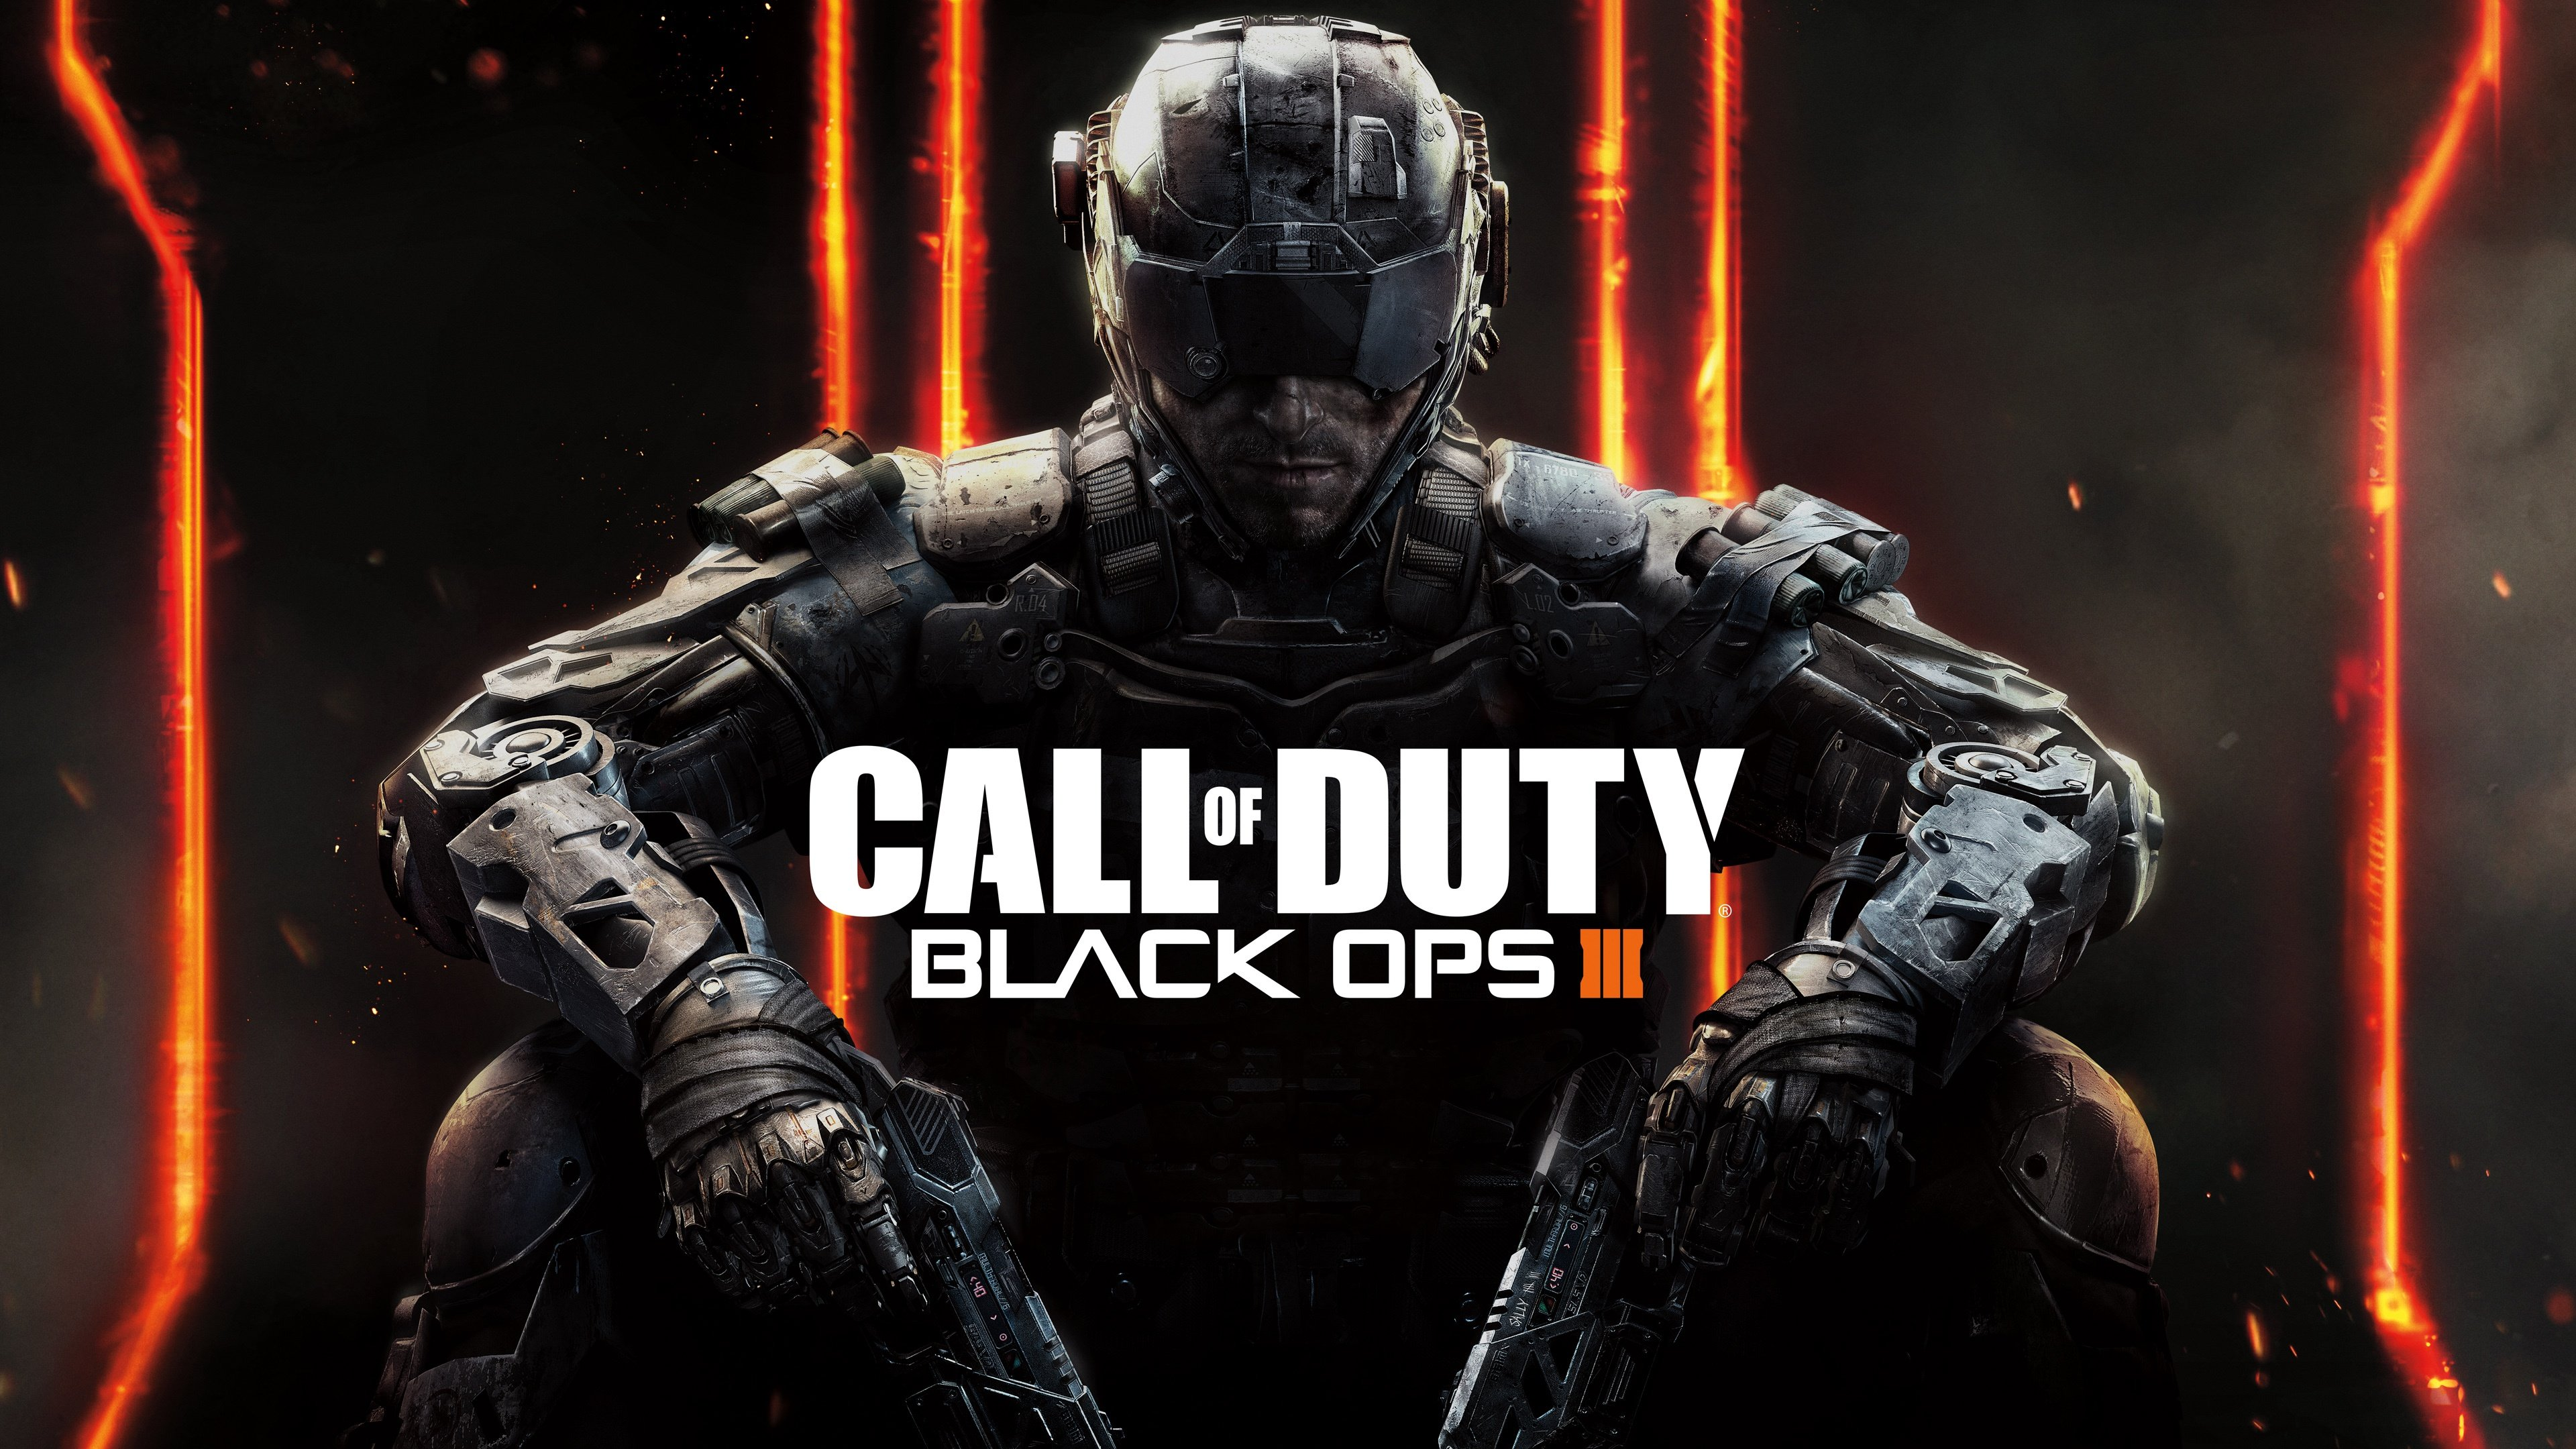 Call of Duty Black Ops III Wallpapers HD Wallpapers 3840x2160